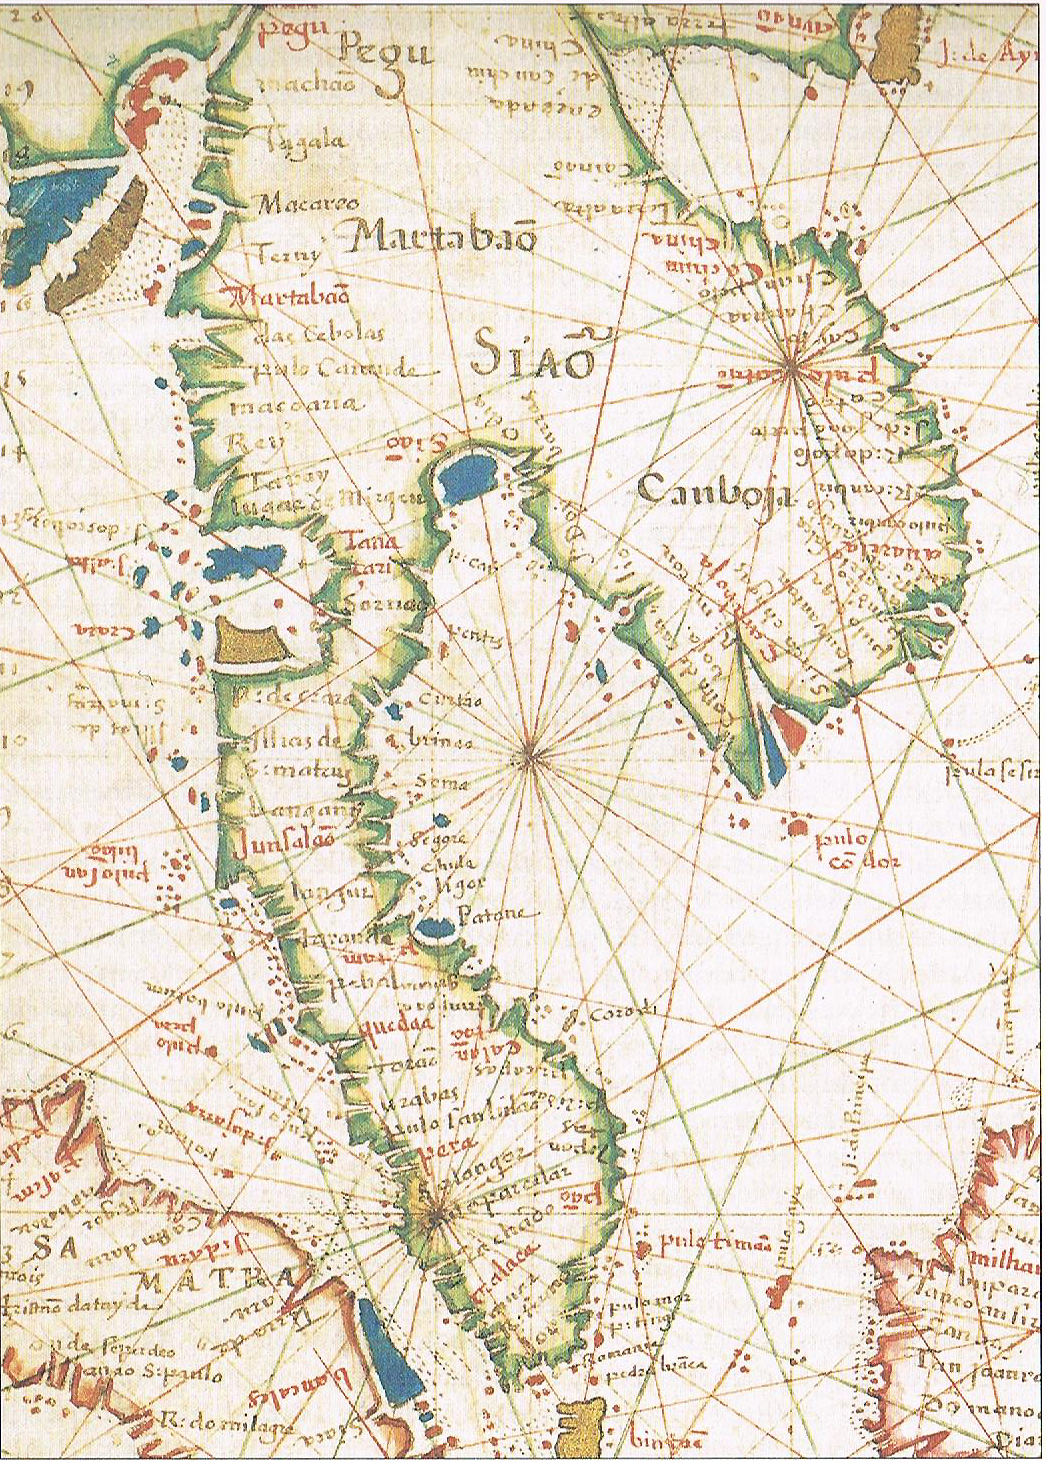 http://upload.wikimedia.org/wikipedia/commons/d/d3/Portuguesee_map_of_SouthEast_Asia_in_the_17th_century.jpg